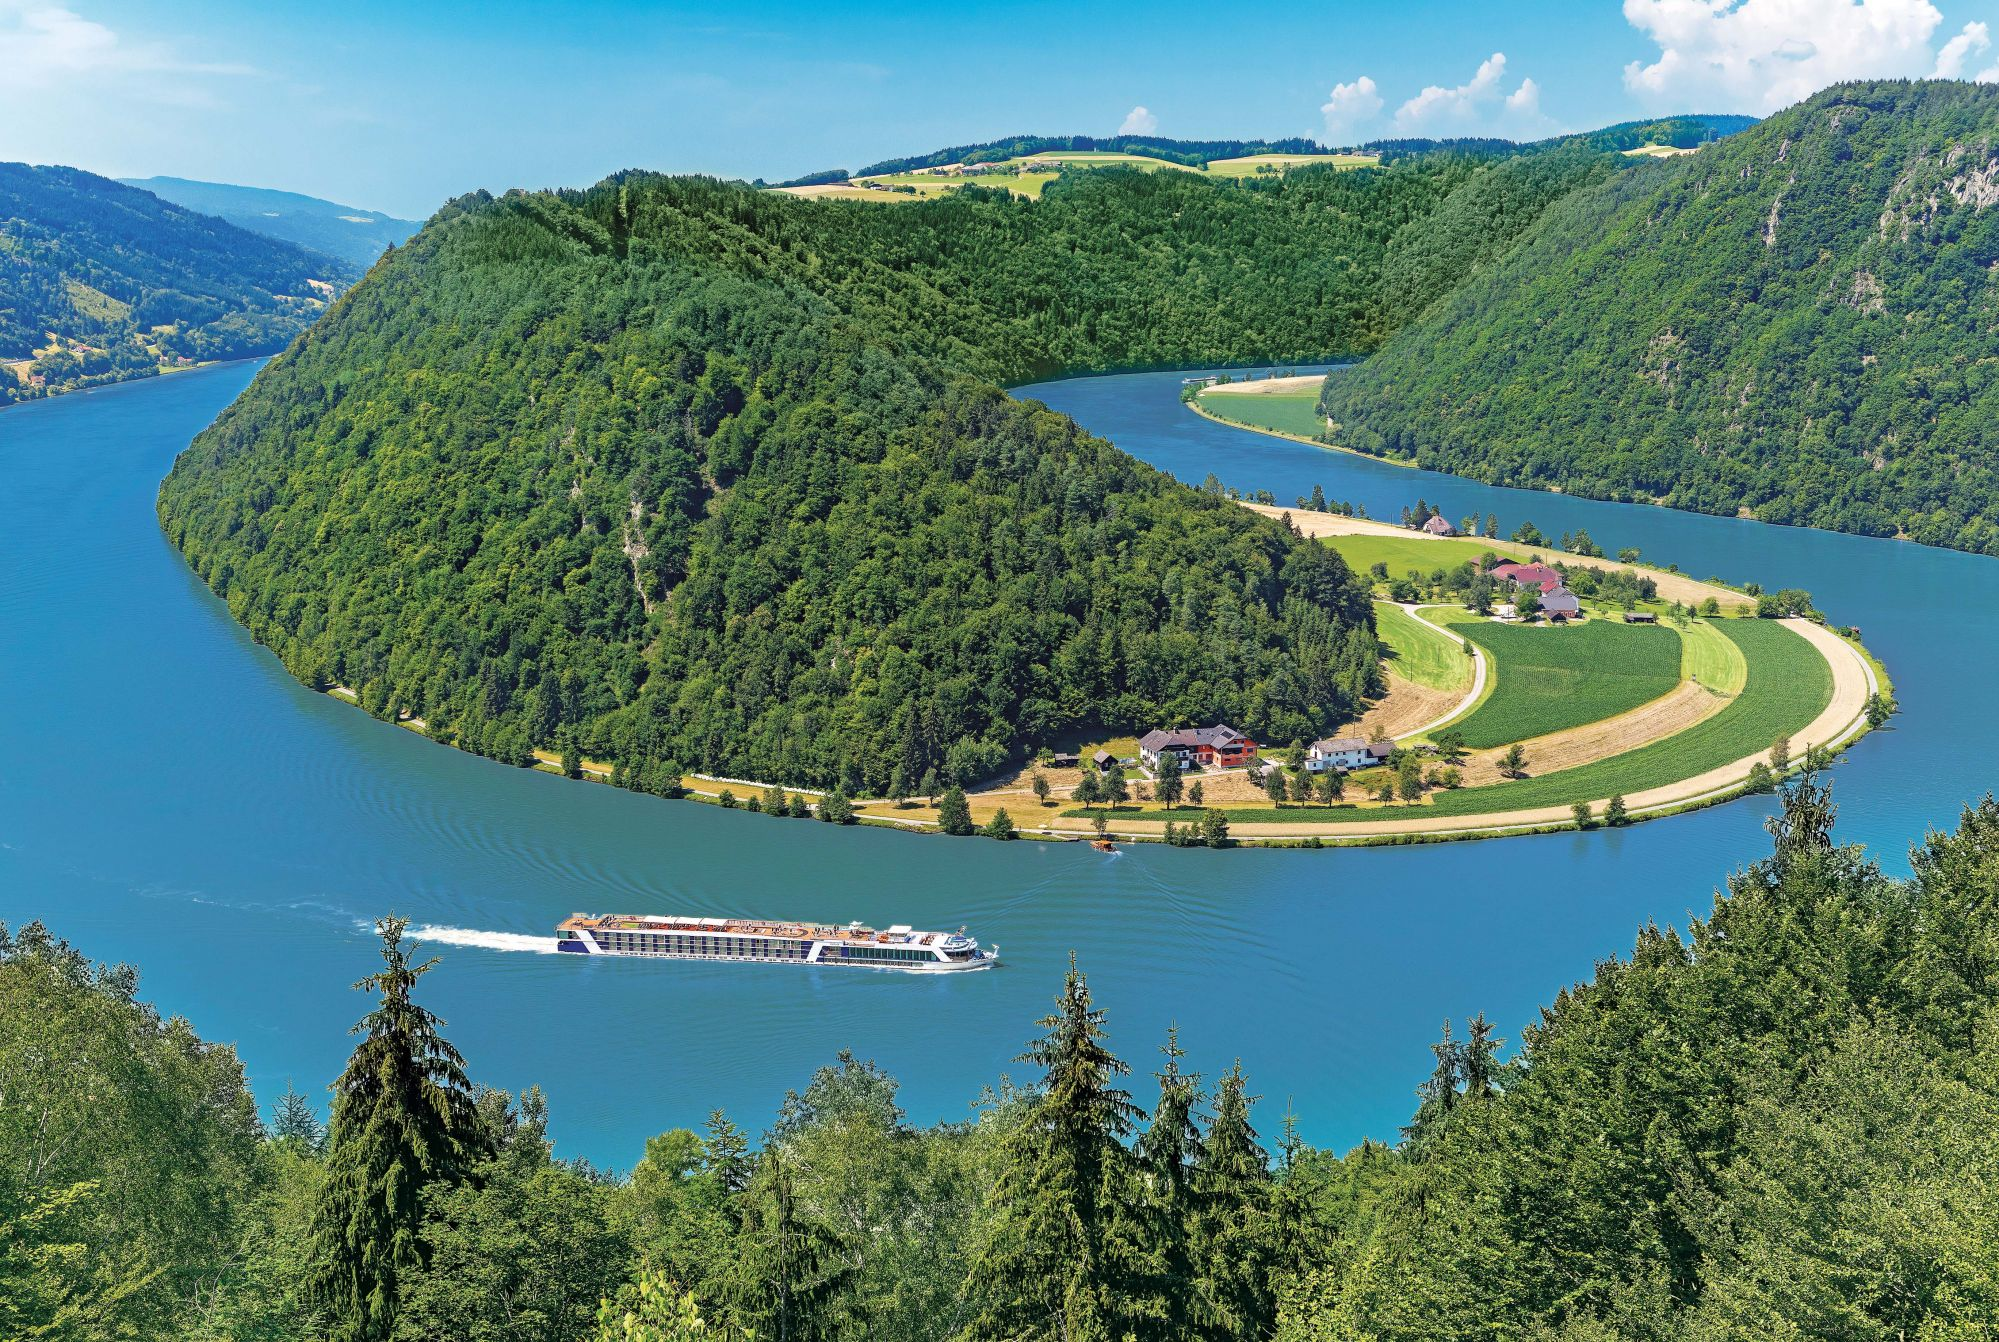 Waltzing the Danube: Discovering The Delights Of River Cruising On-board The AmaSonata